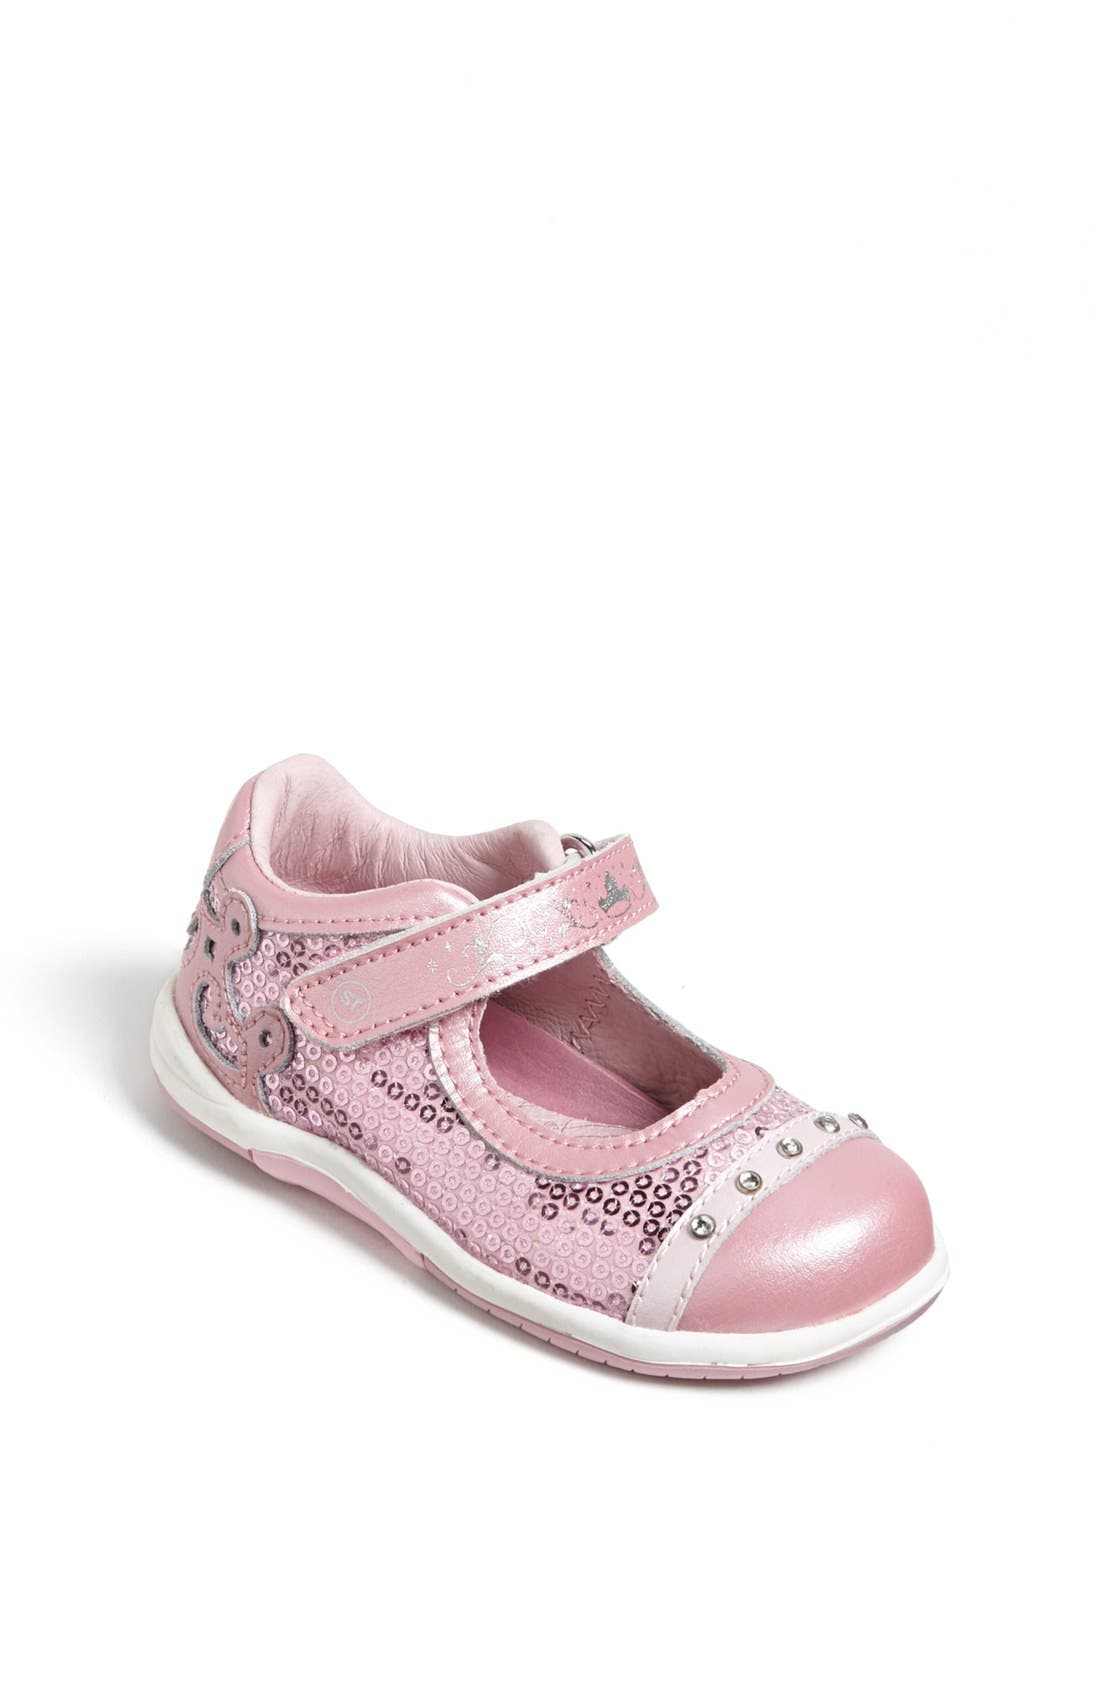 STRIDE RITE,                             'SRT Aurora' Mary Jane Sneaker,                             Main thumbnail 1, color,                             650